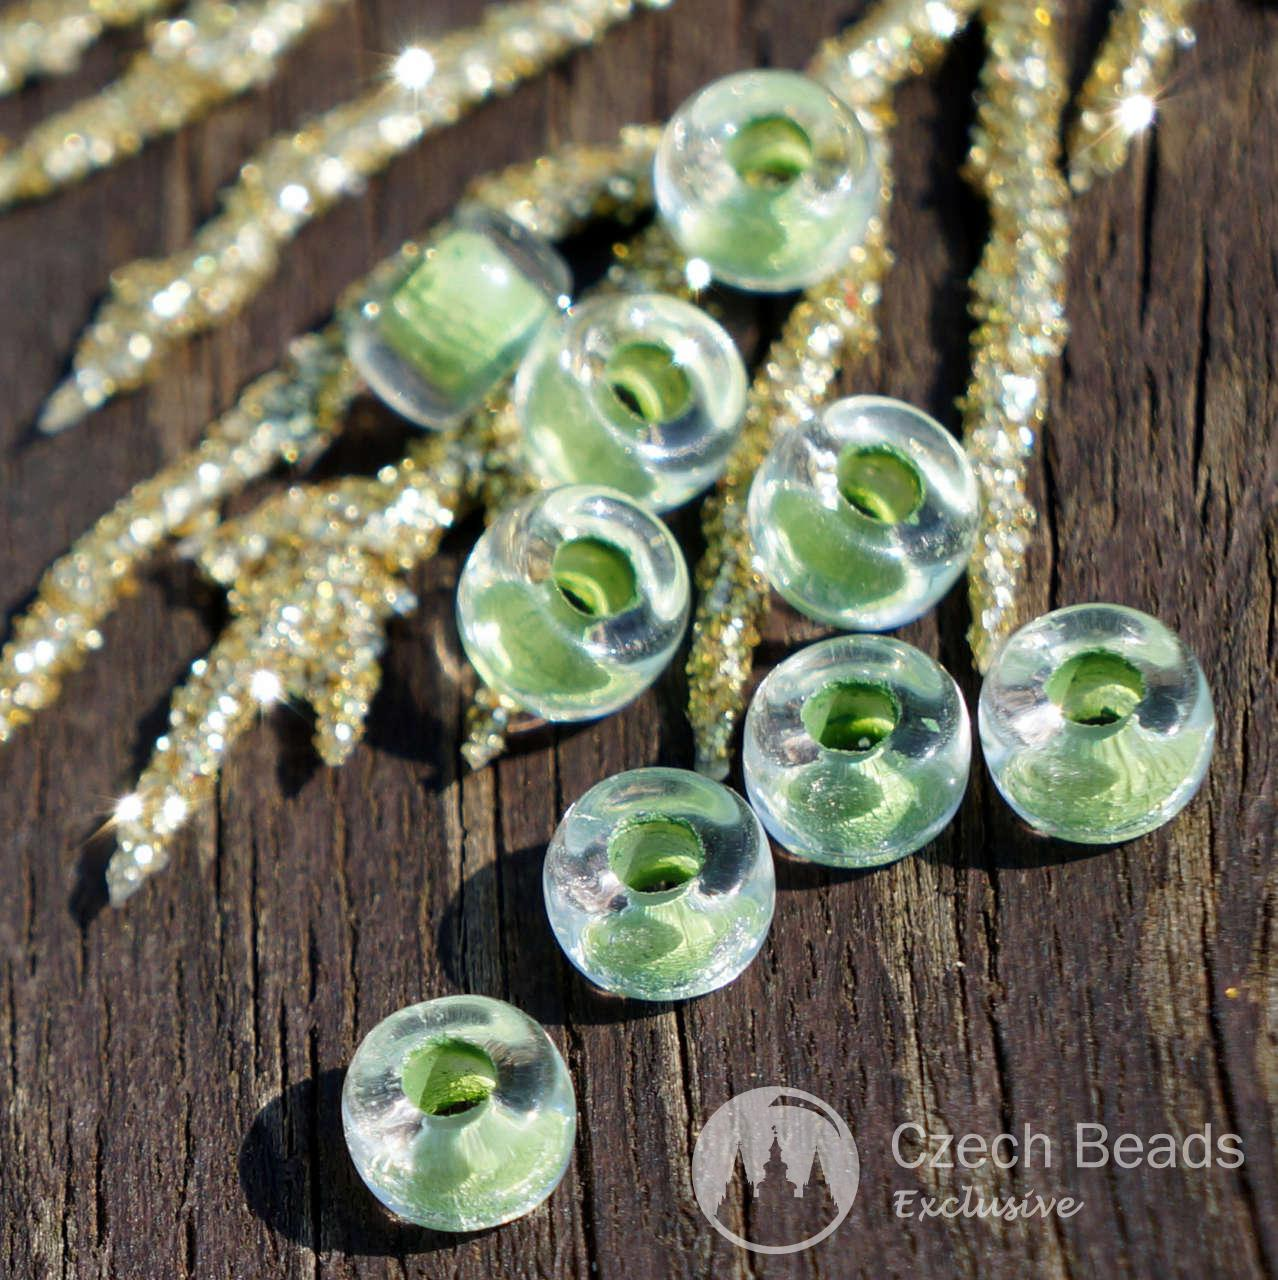 Clear Green Pony Beads Green Ring Beads Green Glass Pony Beads Green Round Czech Glass Beads Roller Beads Glass Crow Beads 6mm x 3mm 50pc for $2.2 from Czech Beads Exclusive